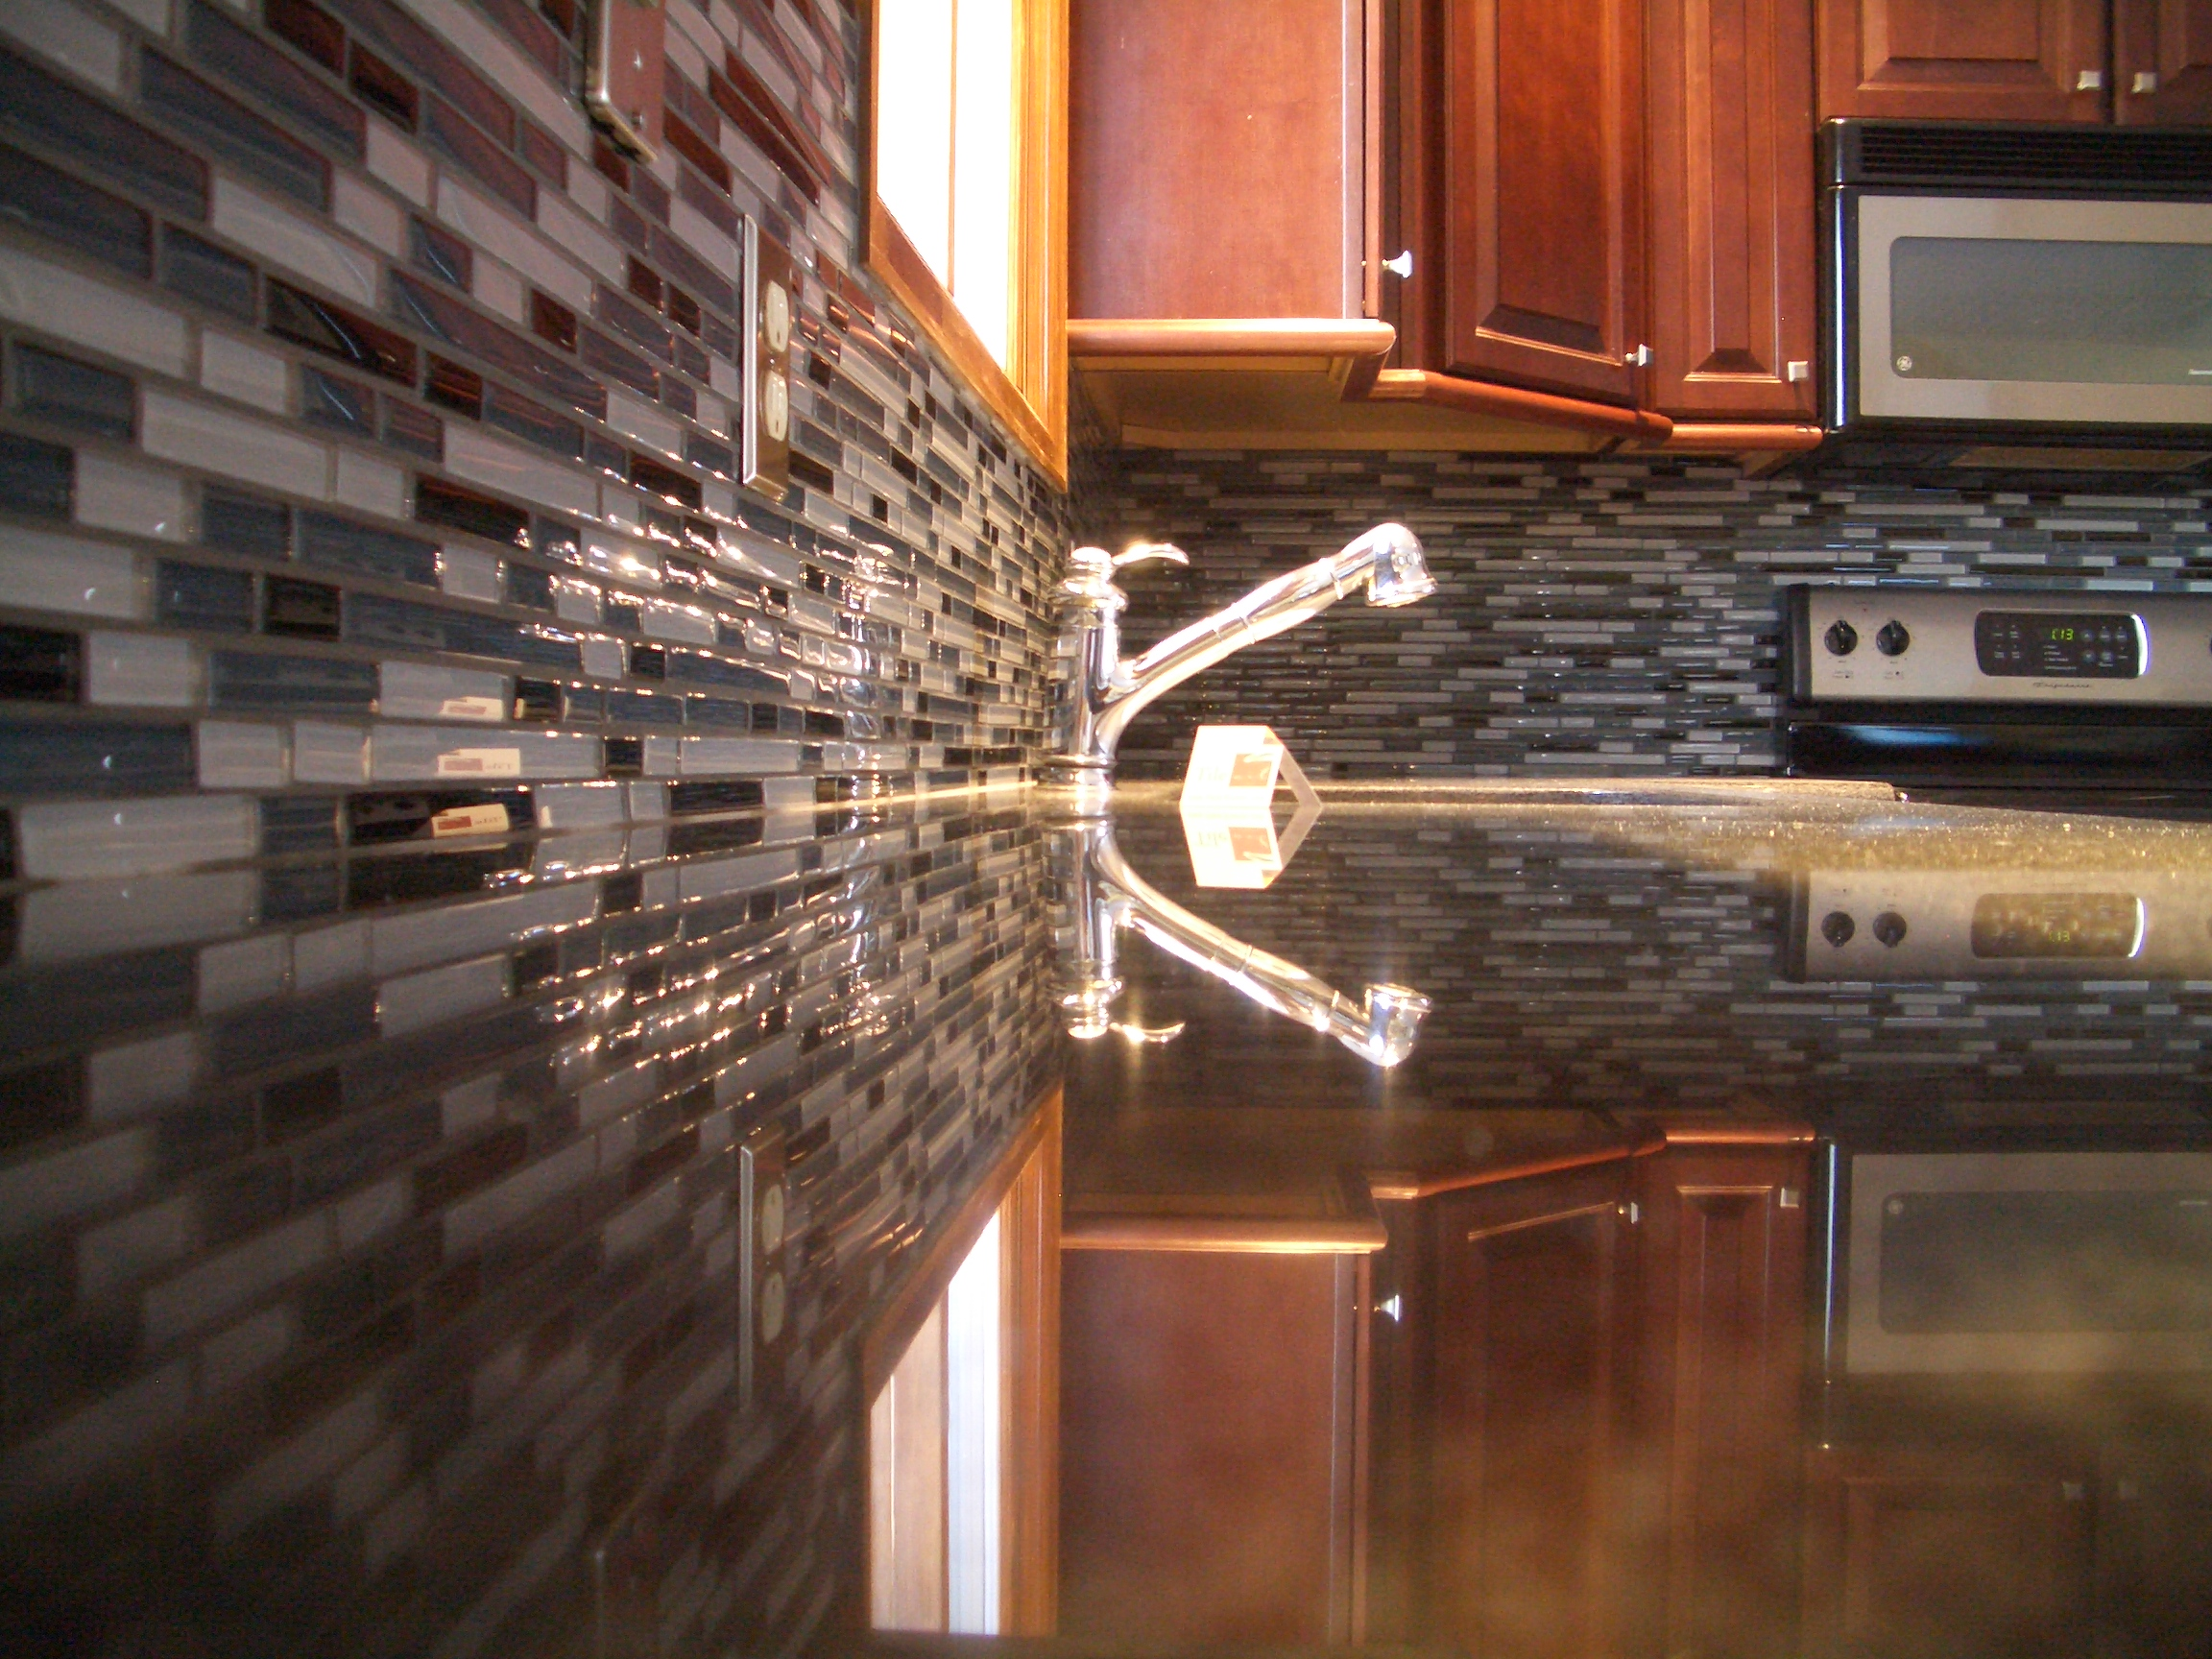 glass tile kitchen backsplash in fort collins glass kitchen backsplash Glass tile kitchen backsplash in Fort Collins